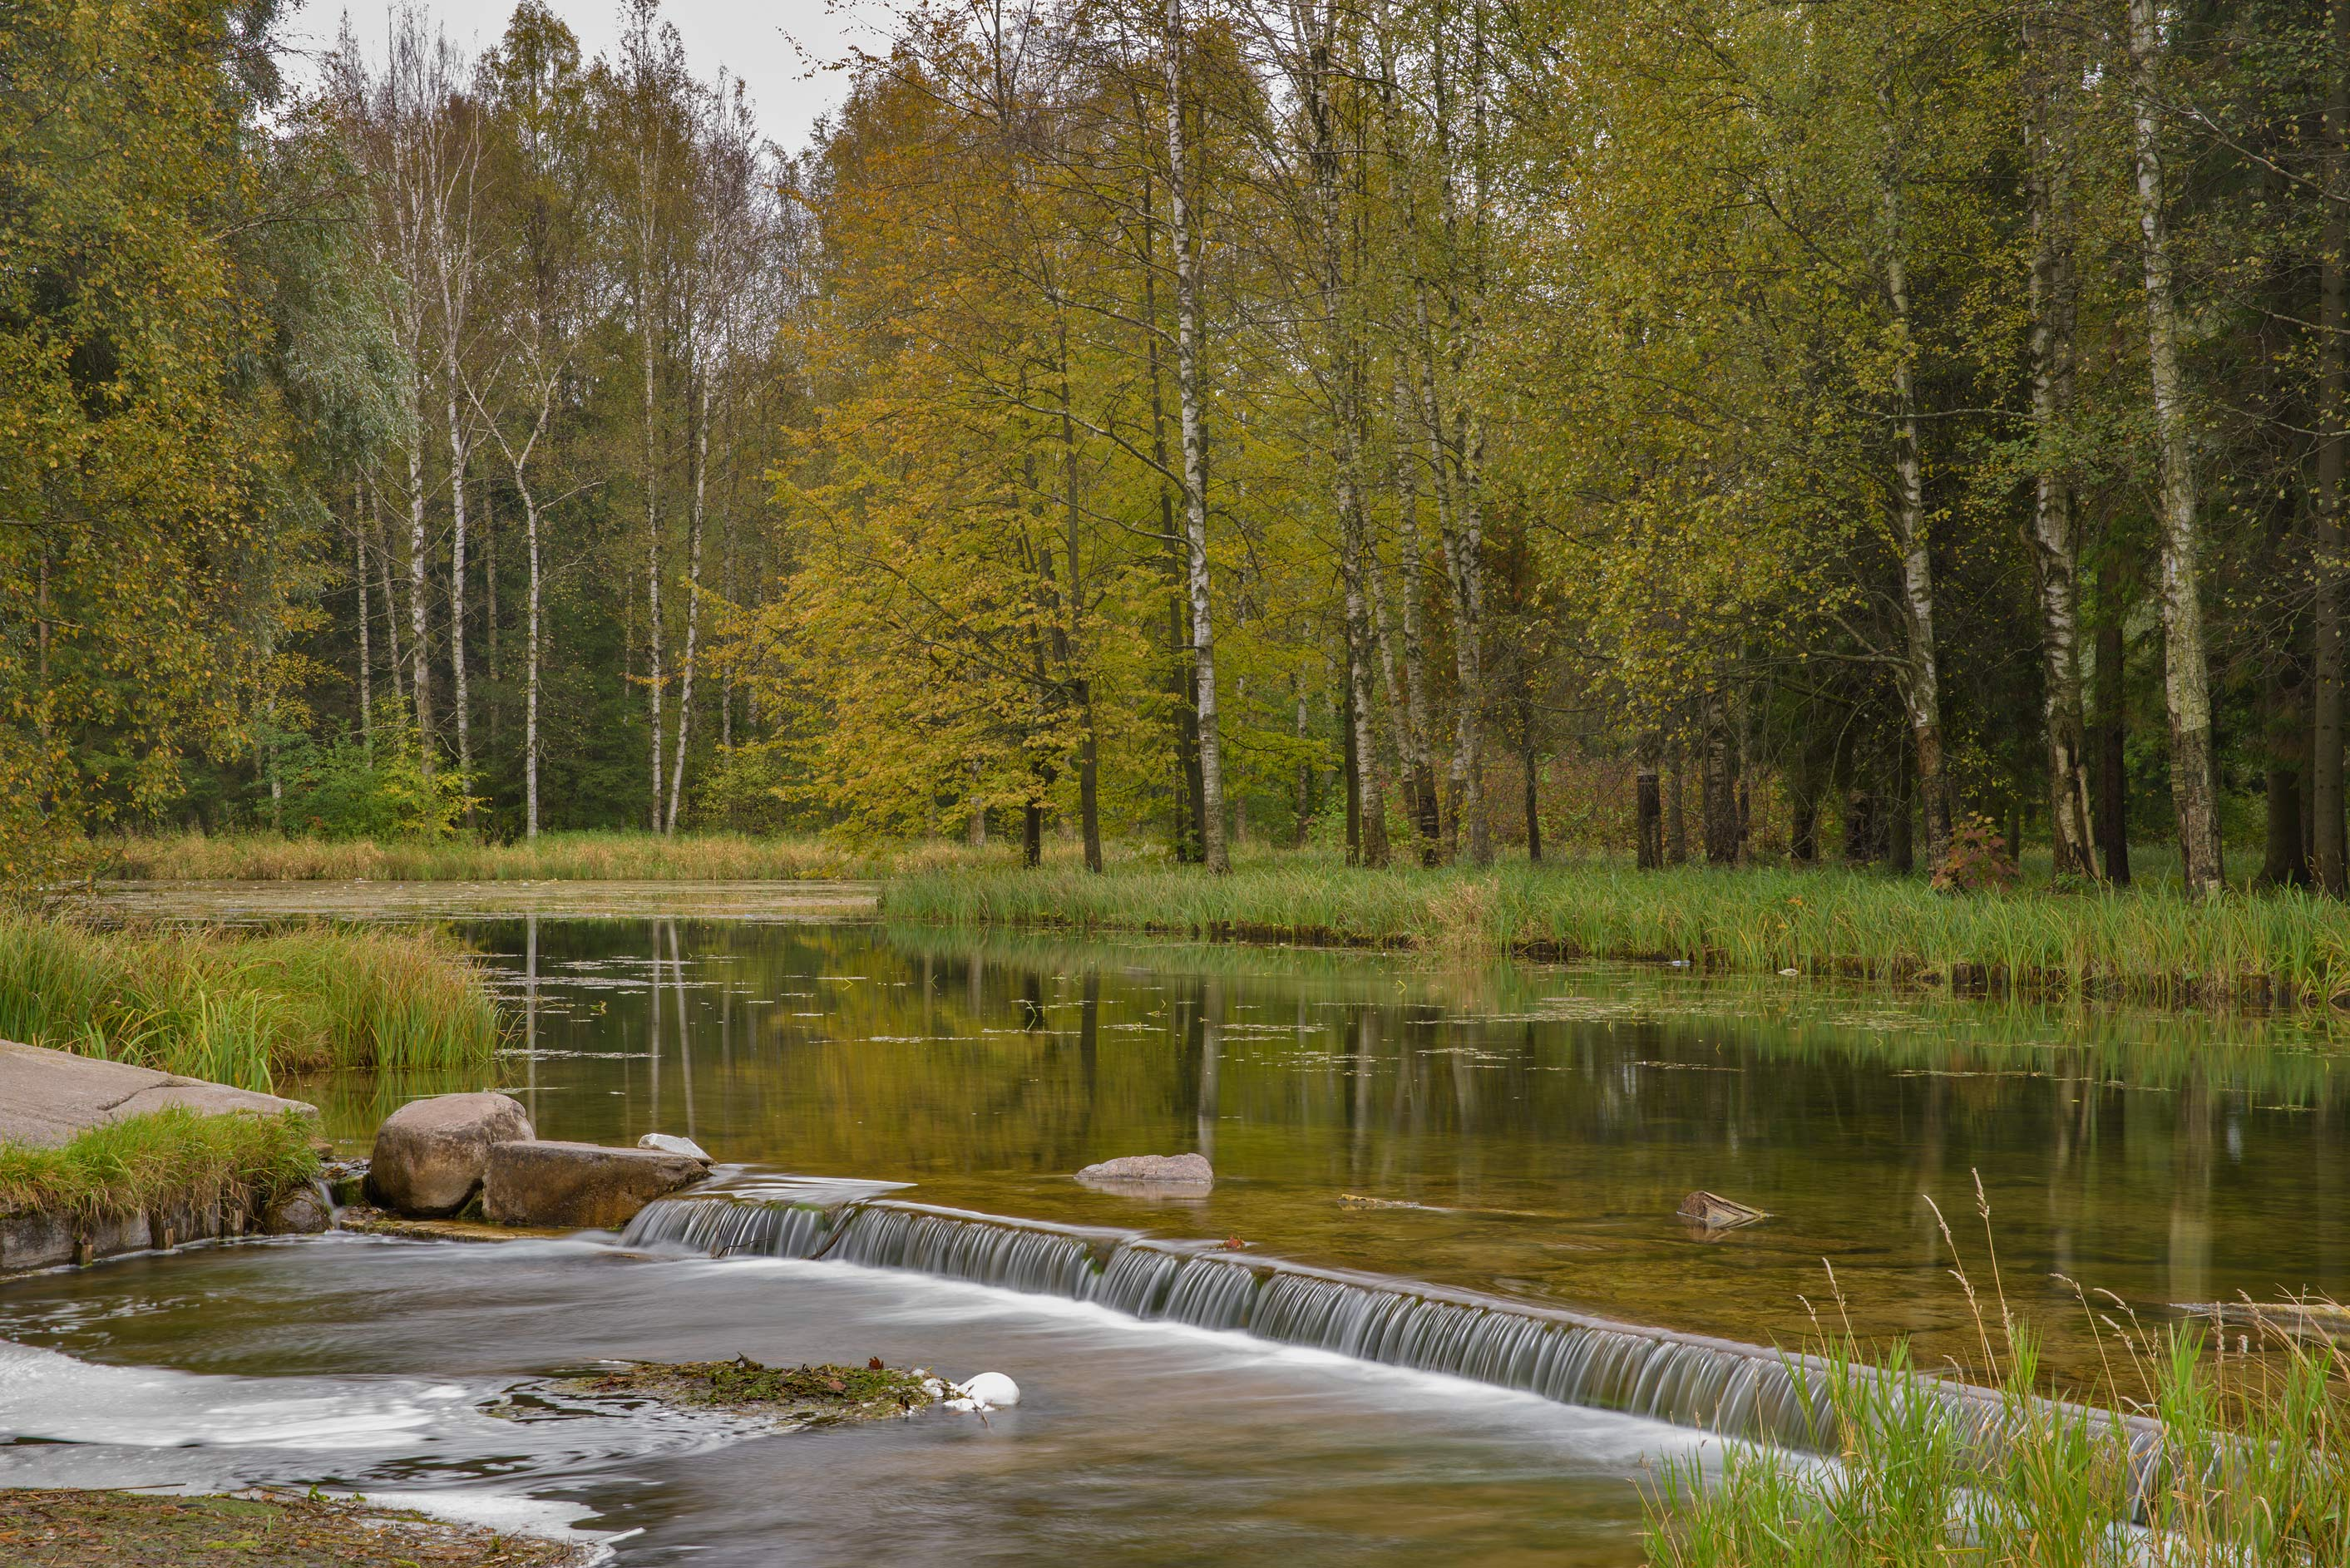 Waterfall of Grebnoy Canal in Gatchina Park. Gatchina, a suburb of St.Petersburg, Russia